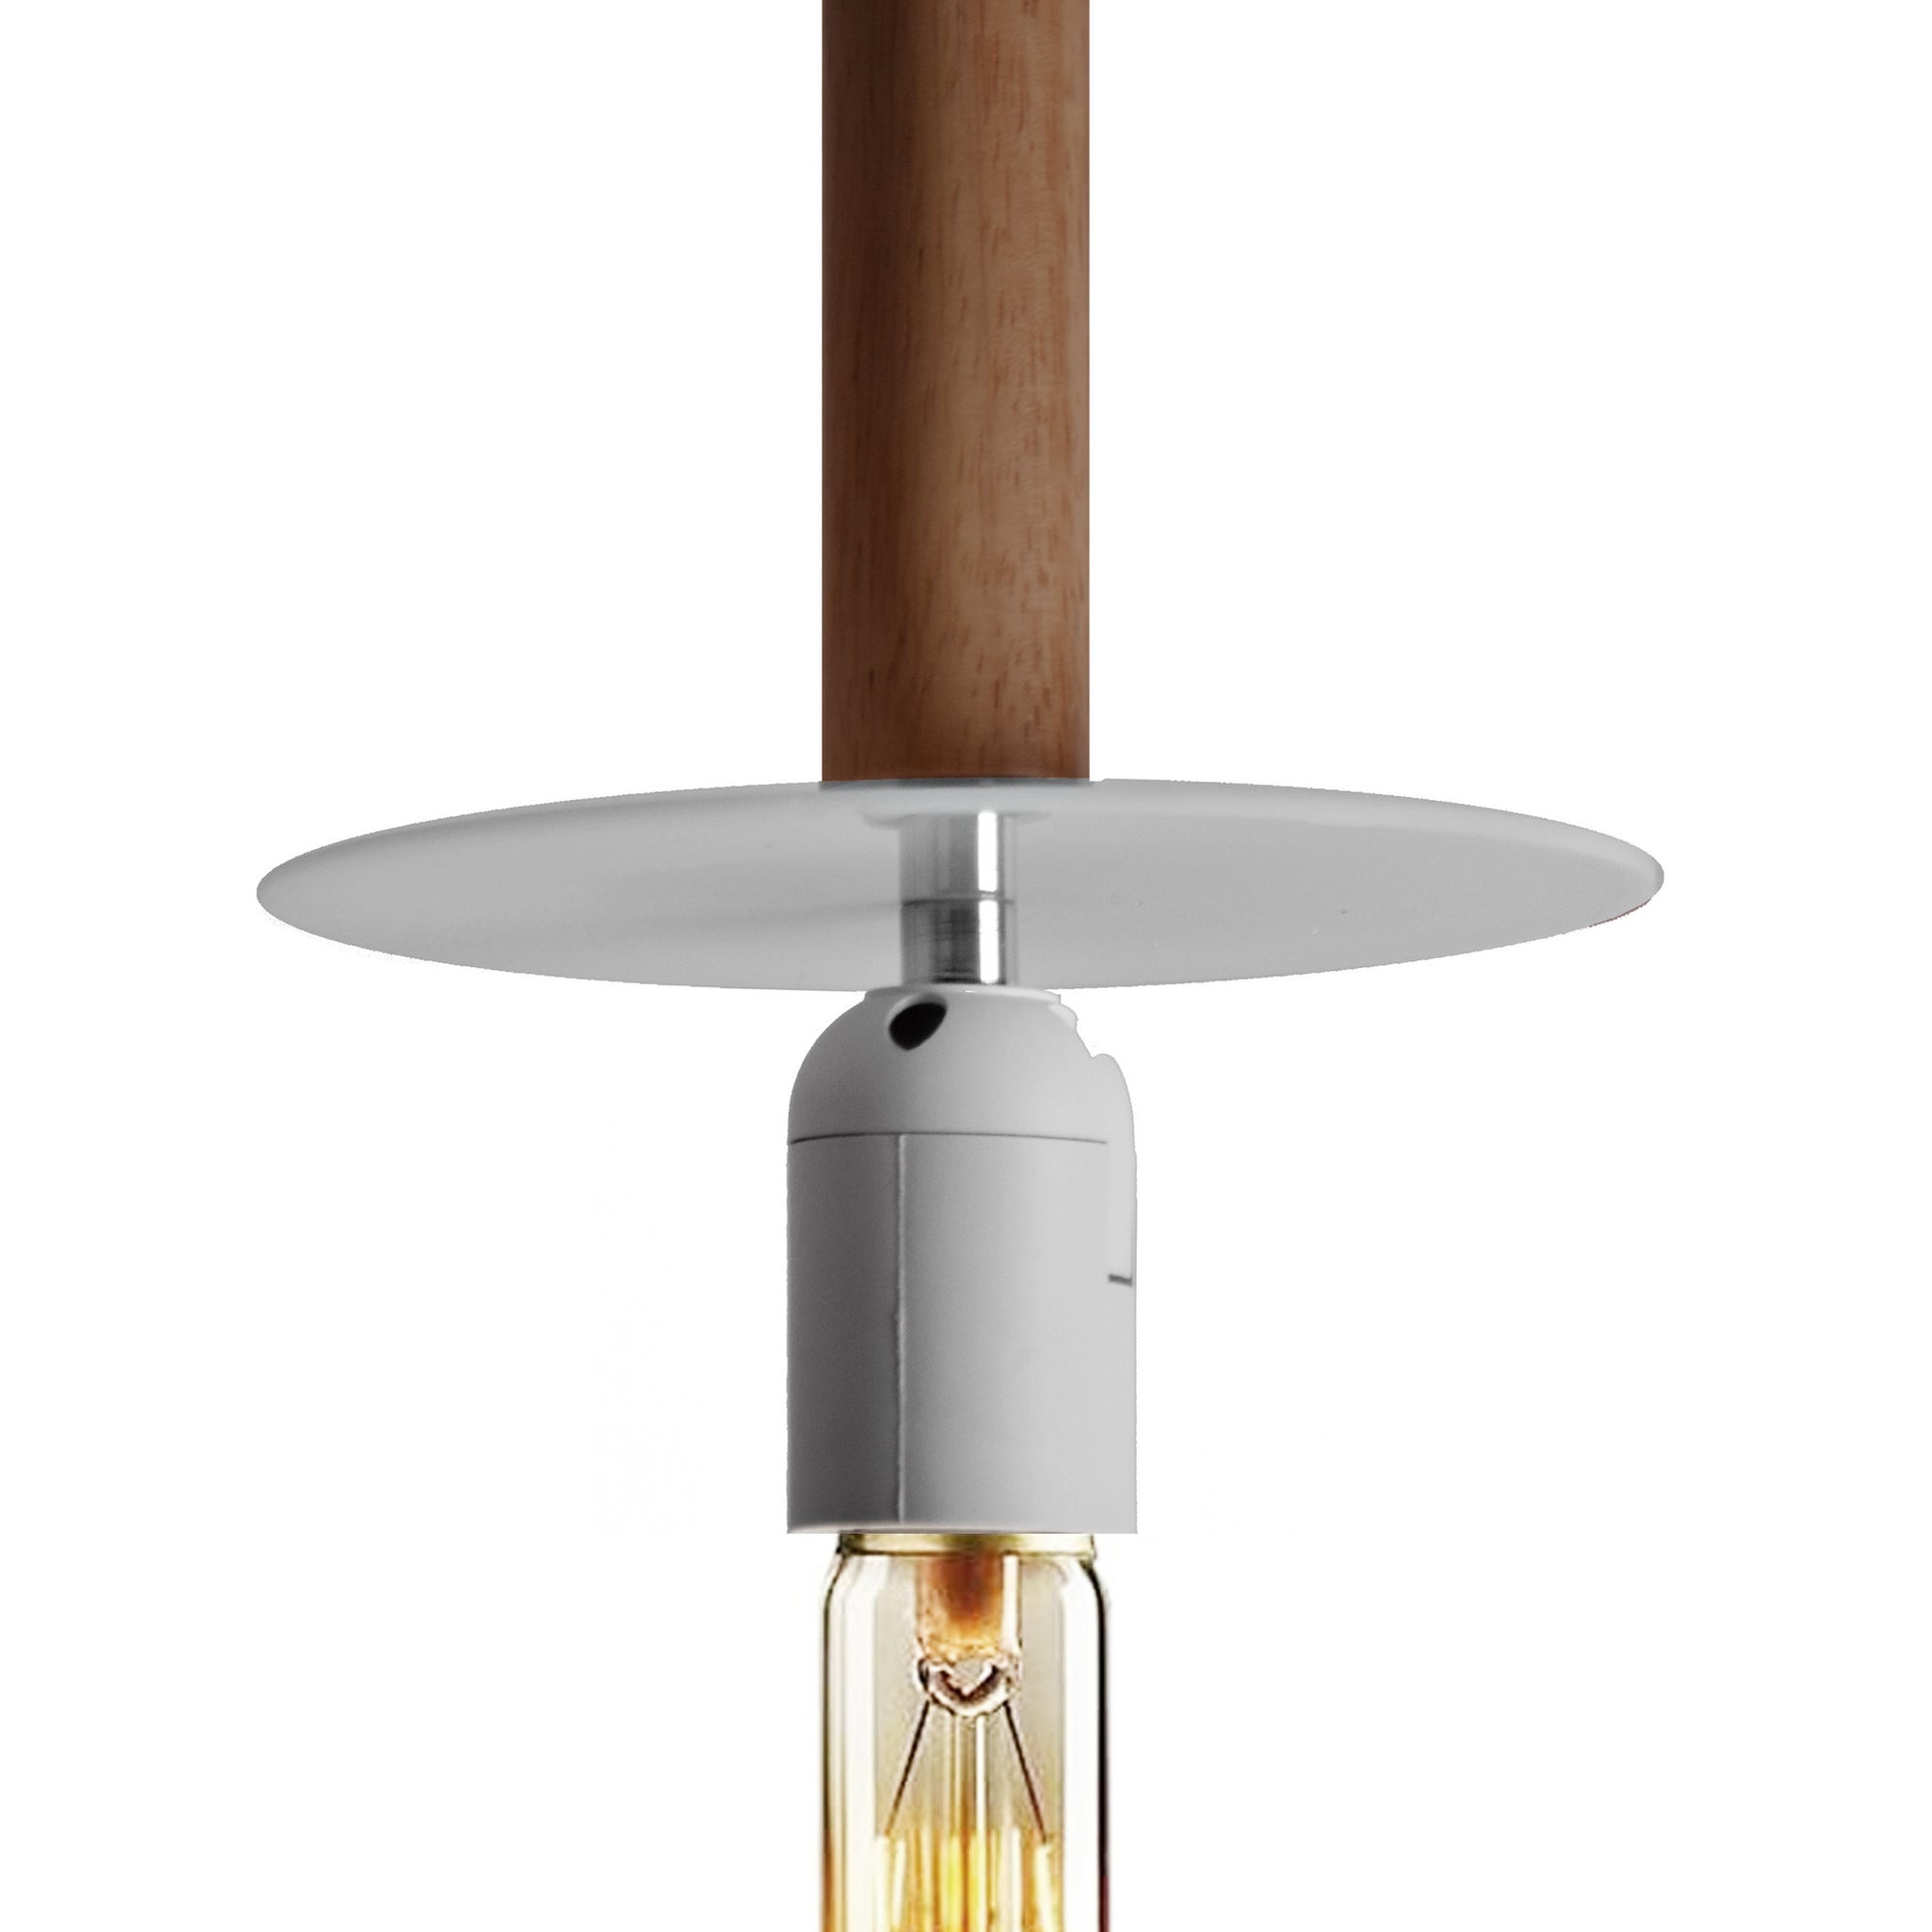 Pendant Lamp - Tall Solid Wood Pendant Lamp BPMT13-W